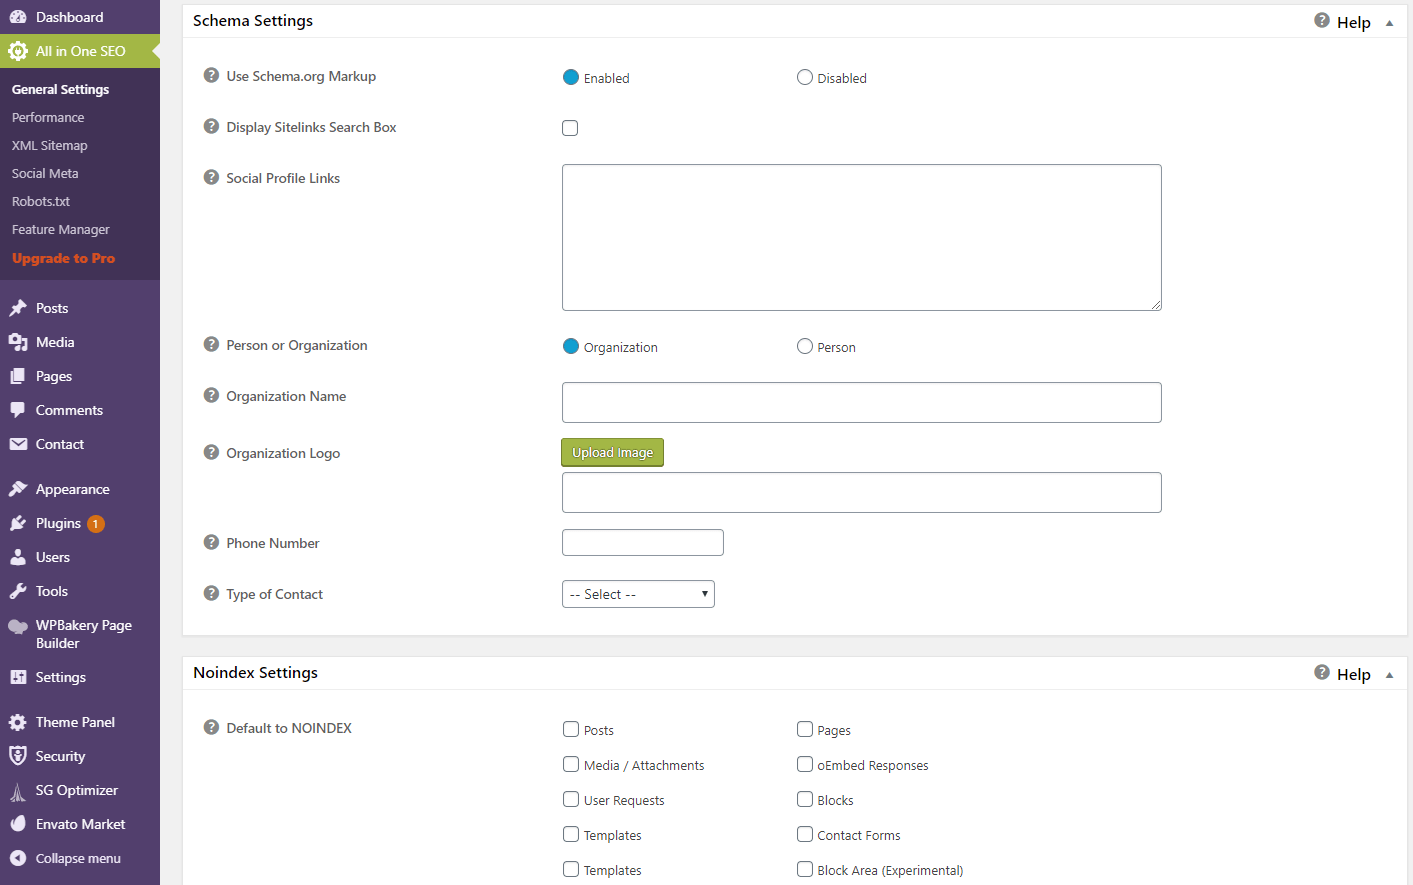 All In One SEO Pack Schema Settings